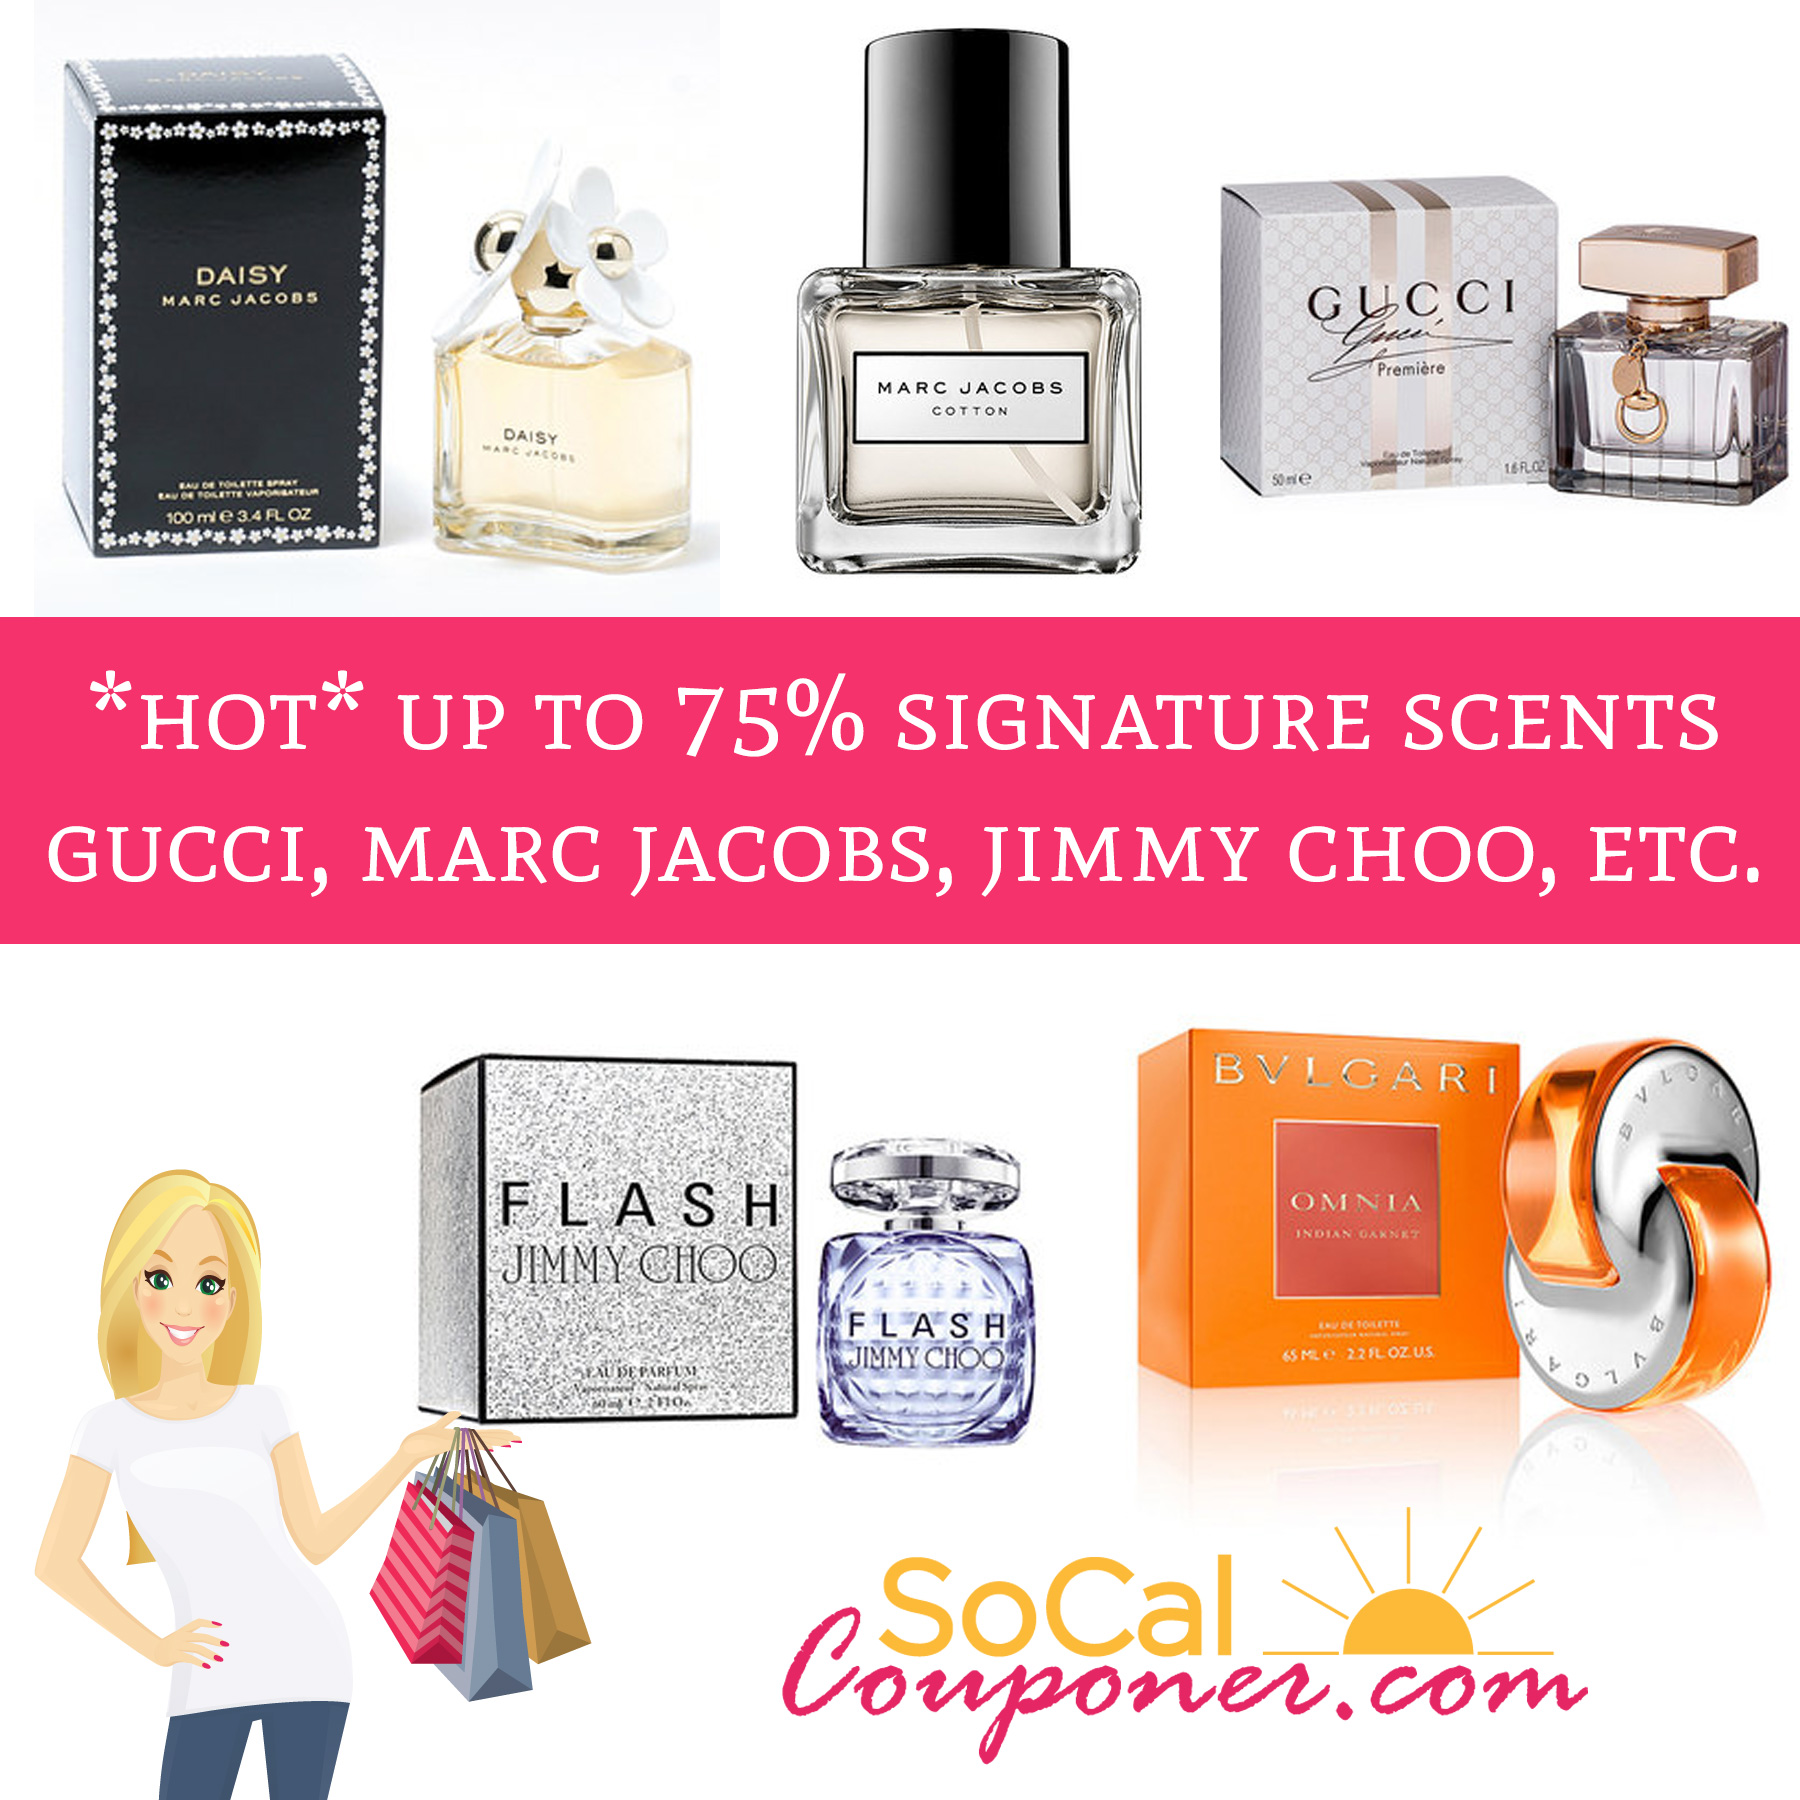 *HOT!* Up To 75% Off Signature Scents